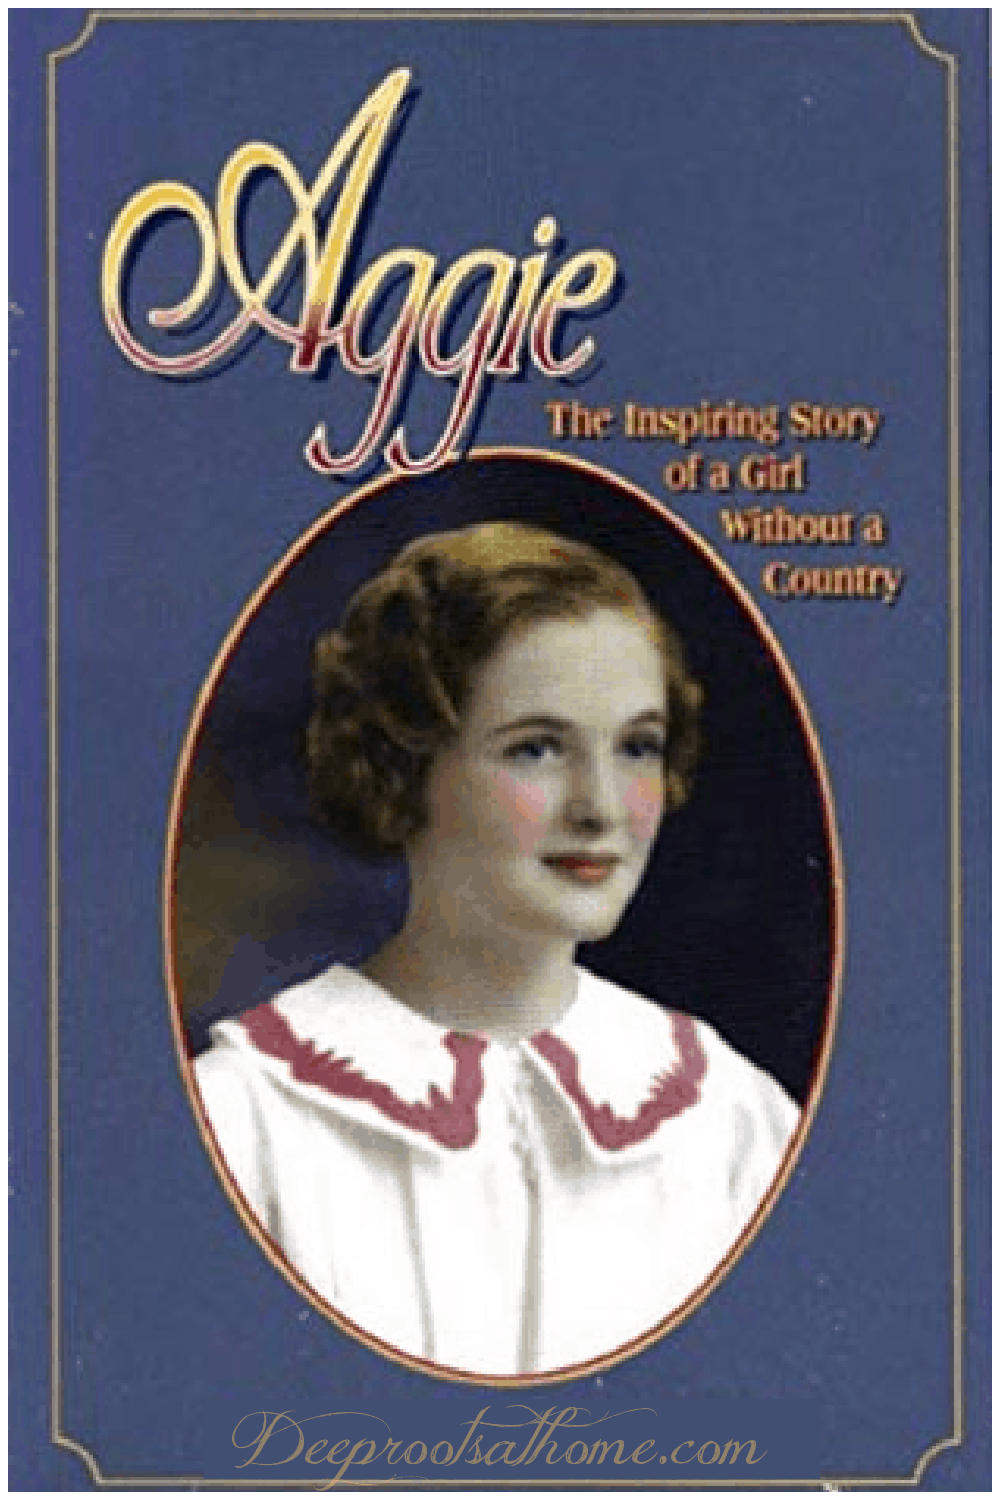 Aggie Hurst: The Astounding Story of A Girl Without A Country